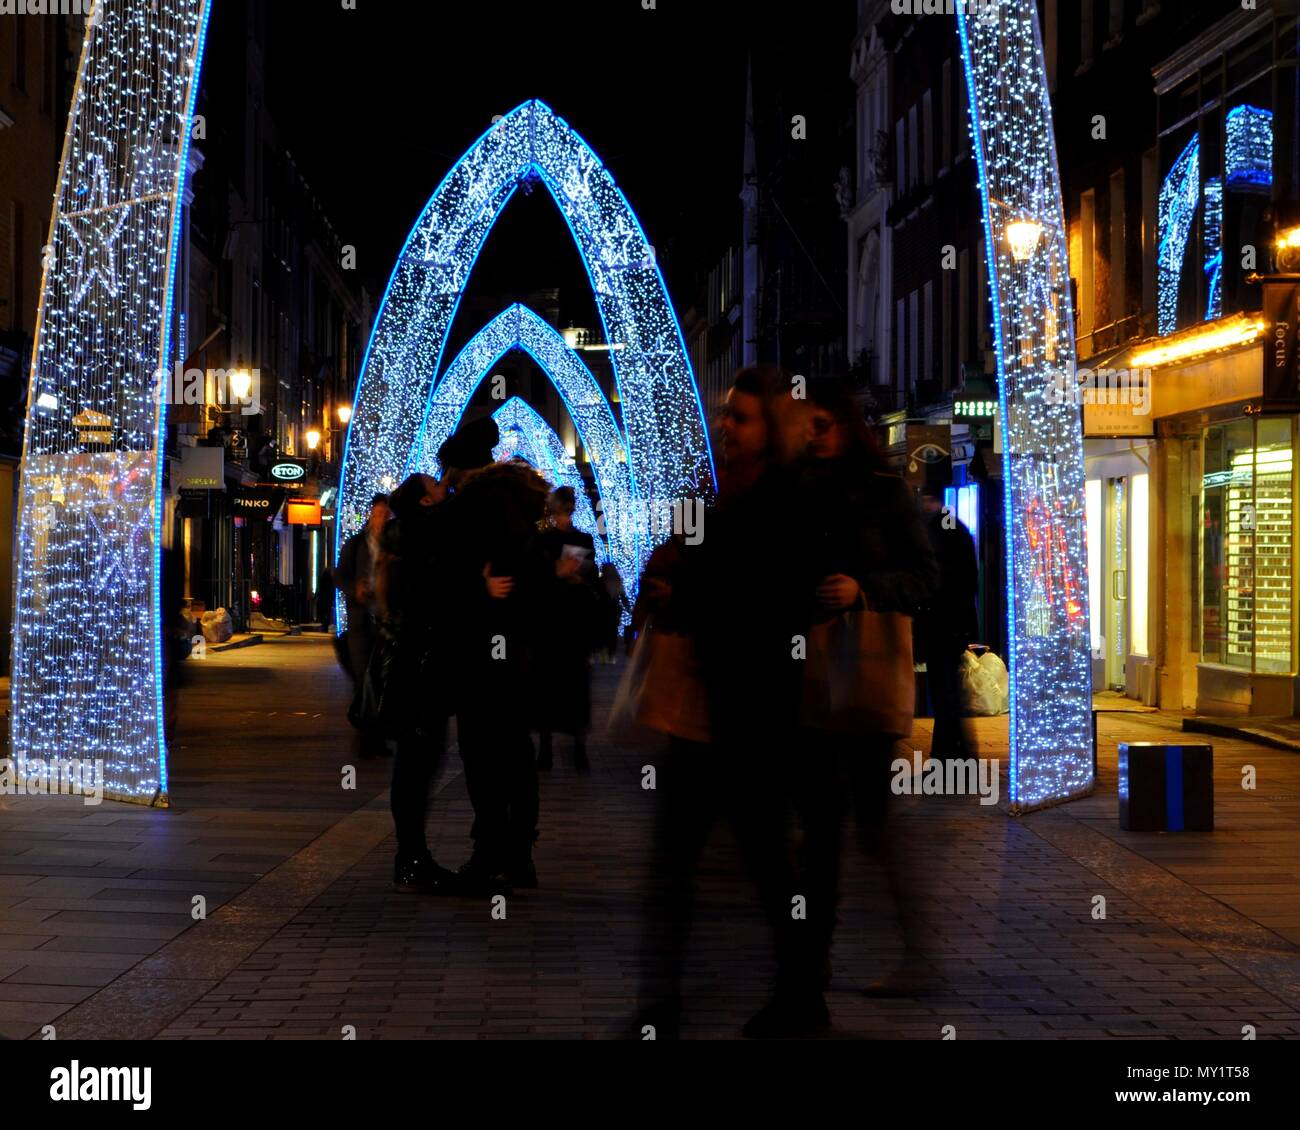 Christmas lights in South Molton Street, London. - Stock Image